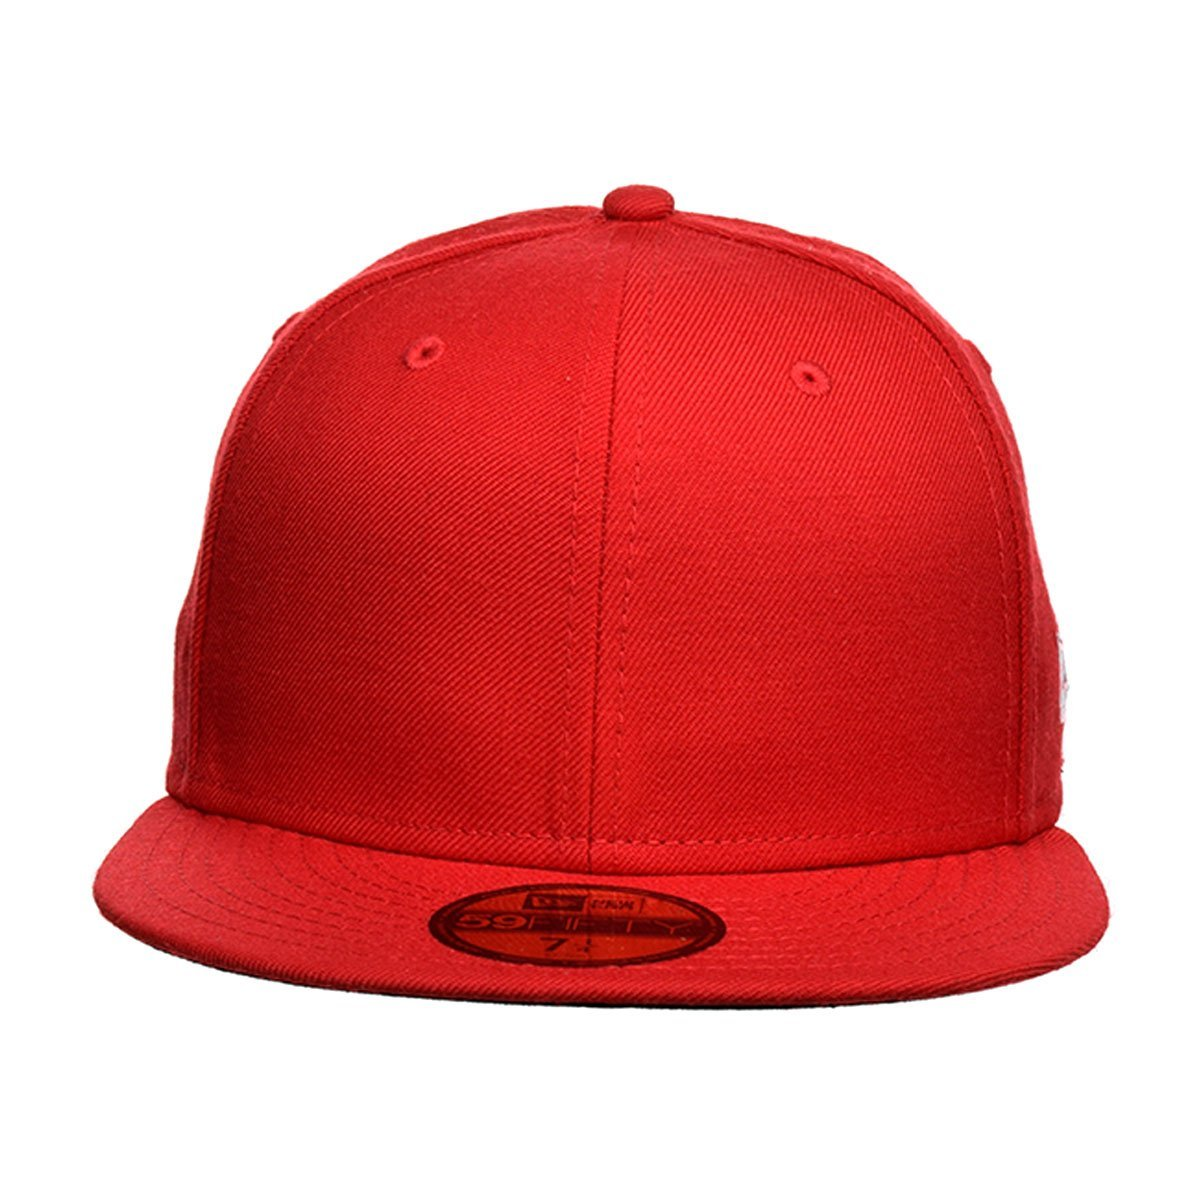 cf11ccd92 Cheap Blank New Era 59fifty, find Blank New Era 59fifty deals on ...